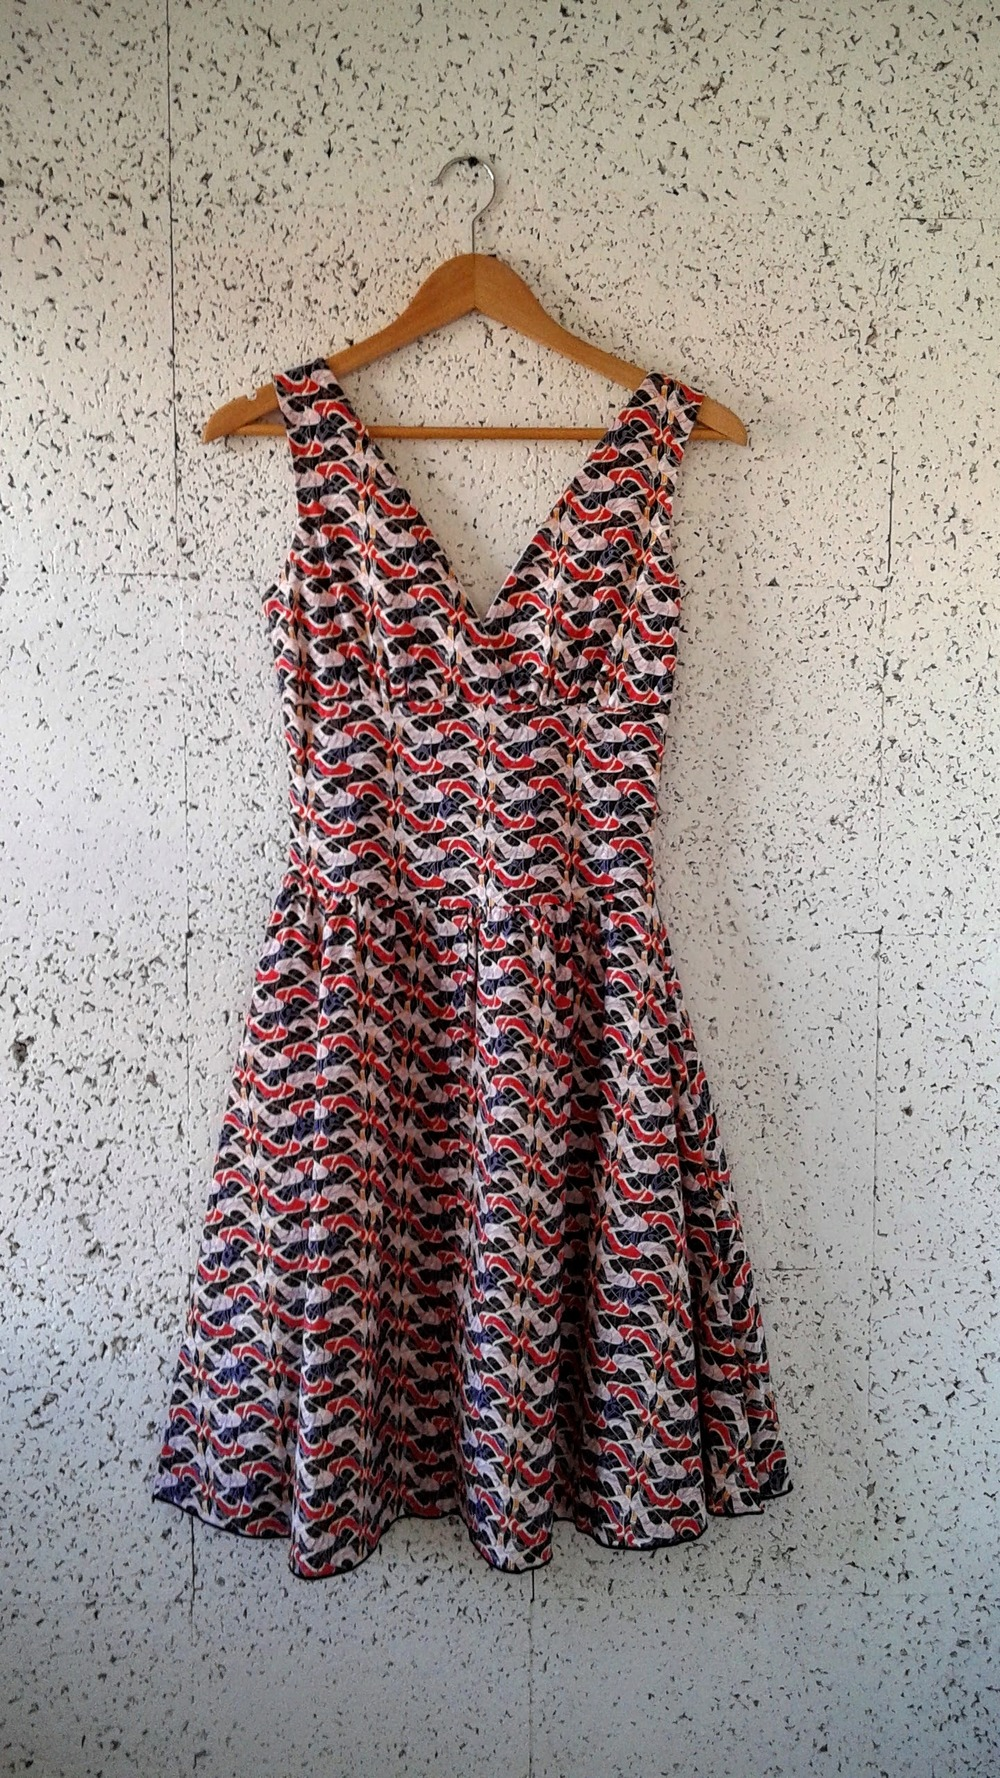 Lux & Luster dress; Size S, $46